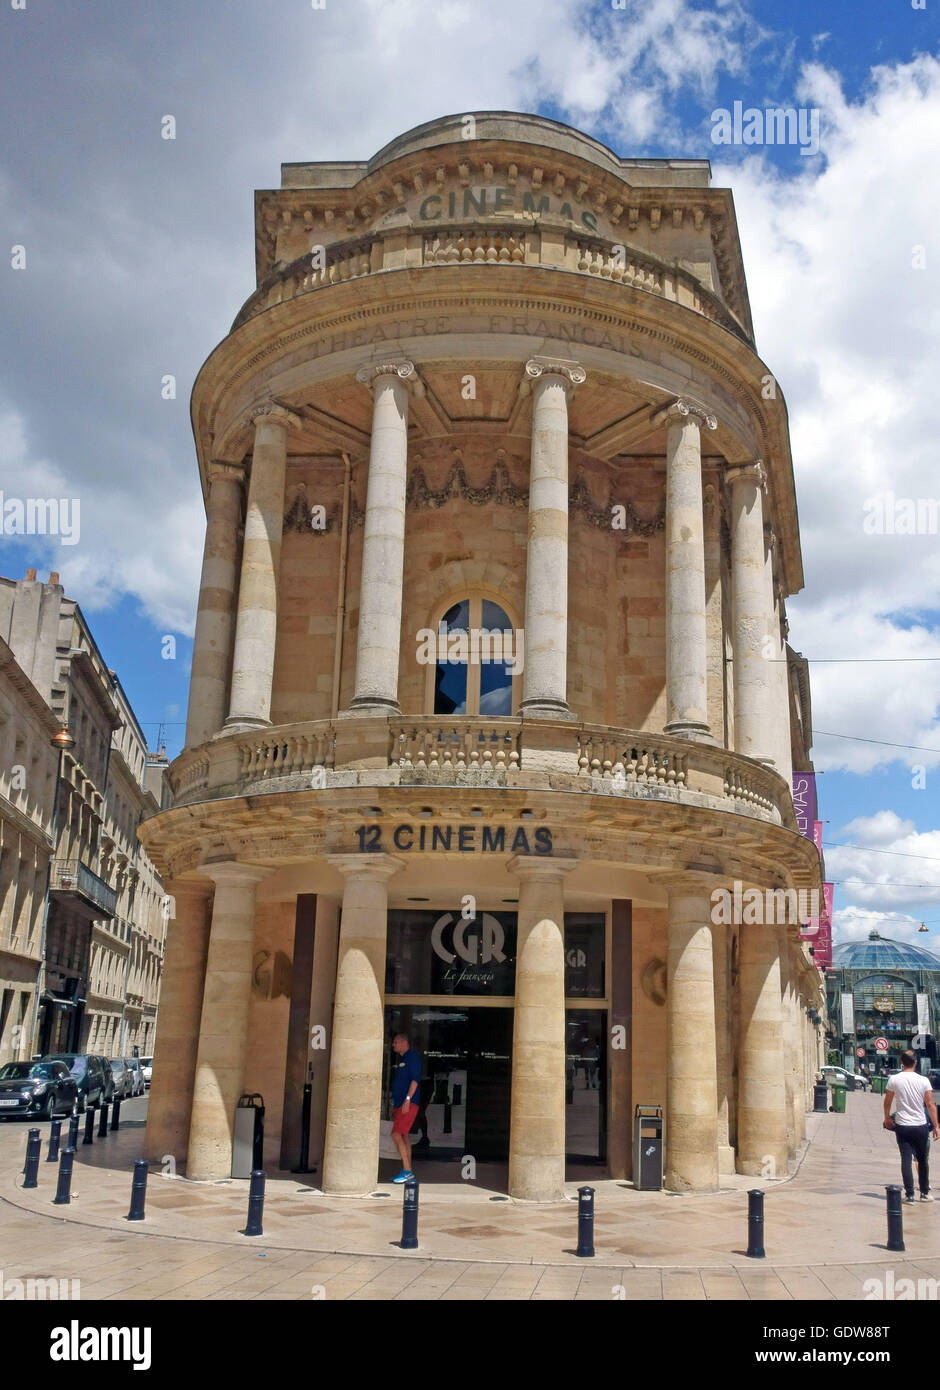 8 screen CGR cinema in old theatre building in Bordeaux, France